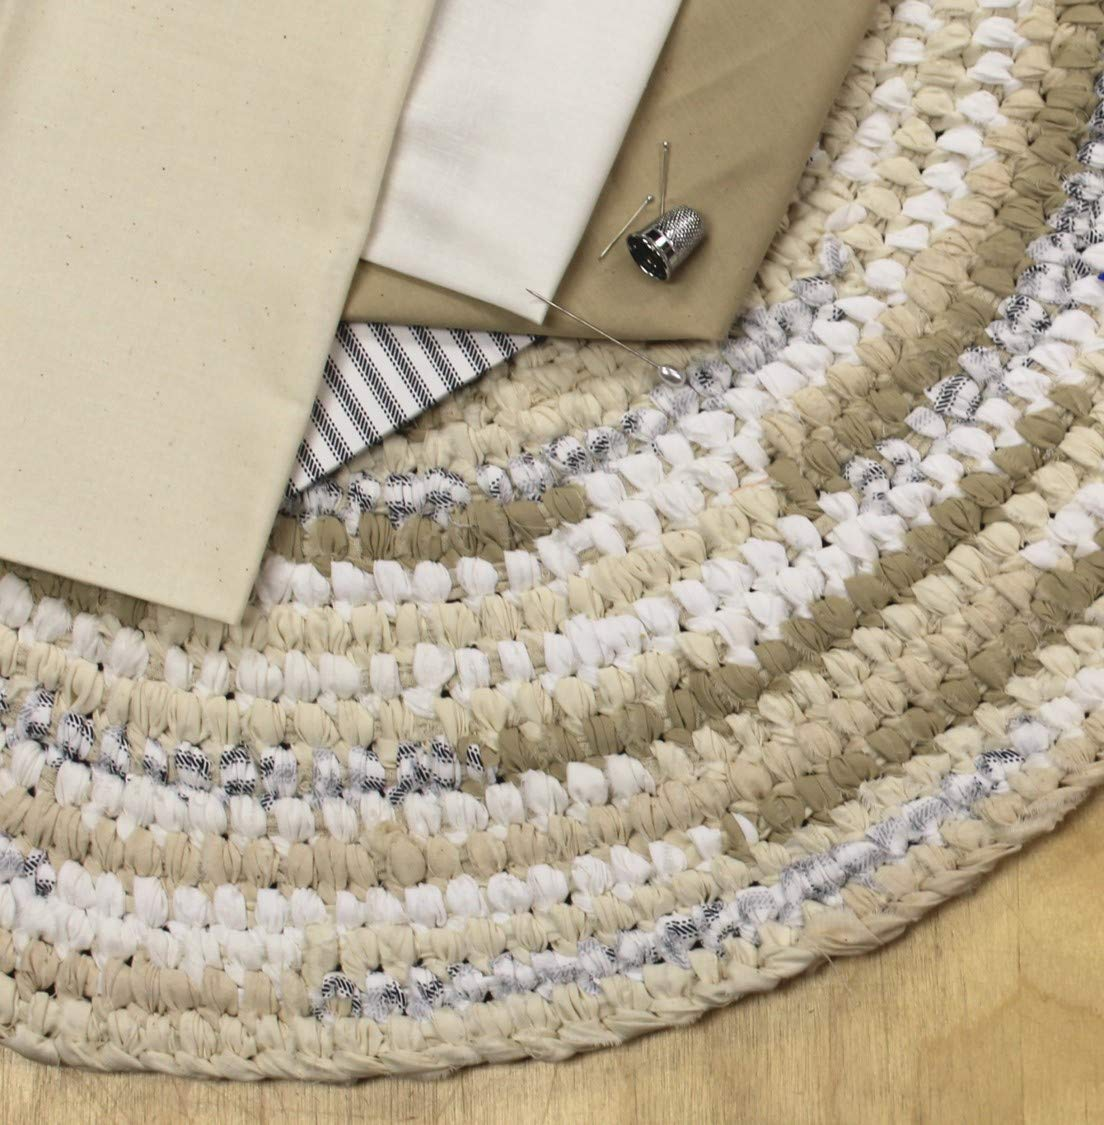 Rockland 200 Count Ava-Lon Supreme Muslin, 108-Inch, Bleached/White (71866) by Roc-lon (Image #5)